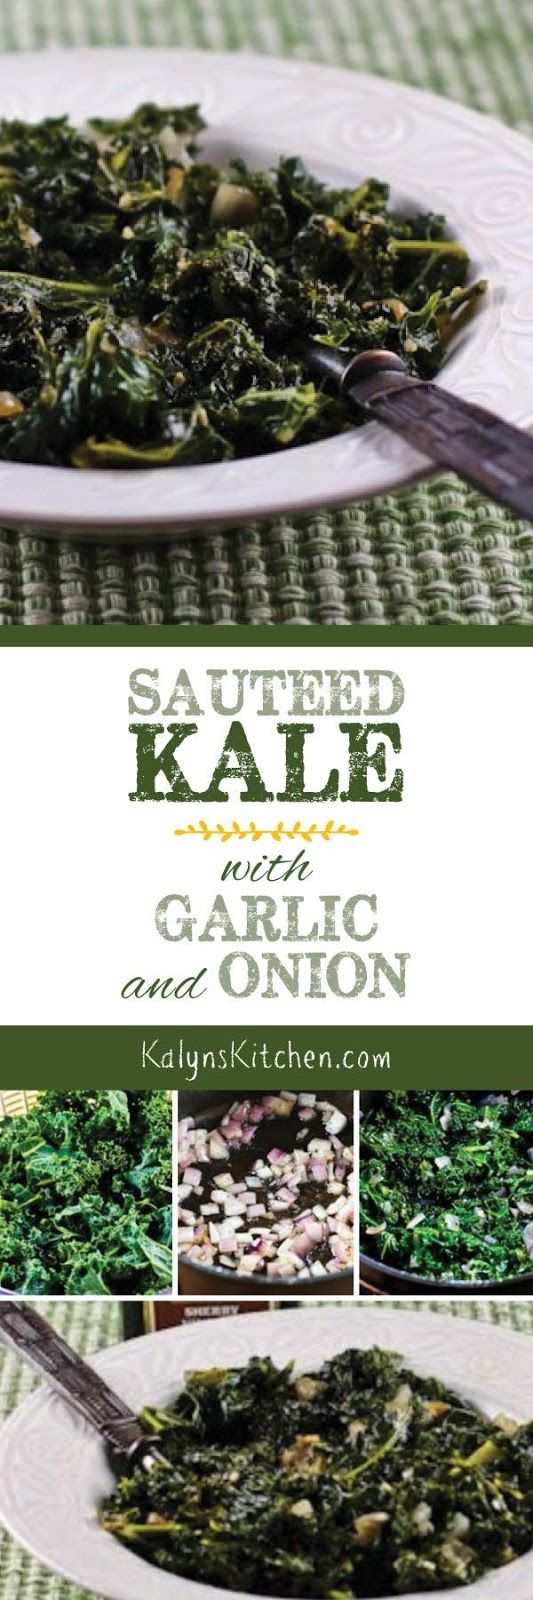 Sauteed Kale with Garlic and Onion is perfect whenever you need more green food in your life, and this tasty kale side dish is about as healthy as it gets, but also delicious. [found on KalynsKitchen.com] #SauteedKale #KaleSideDish #Kale